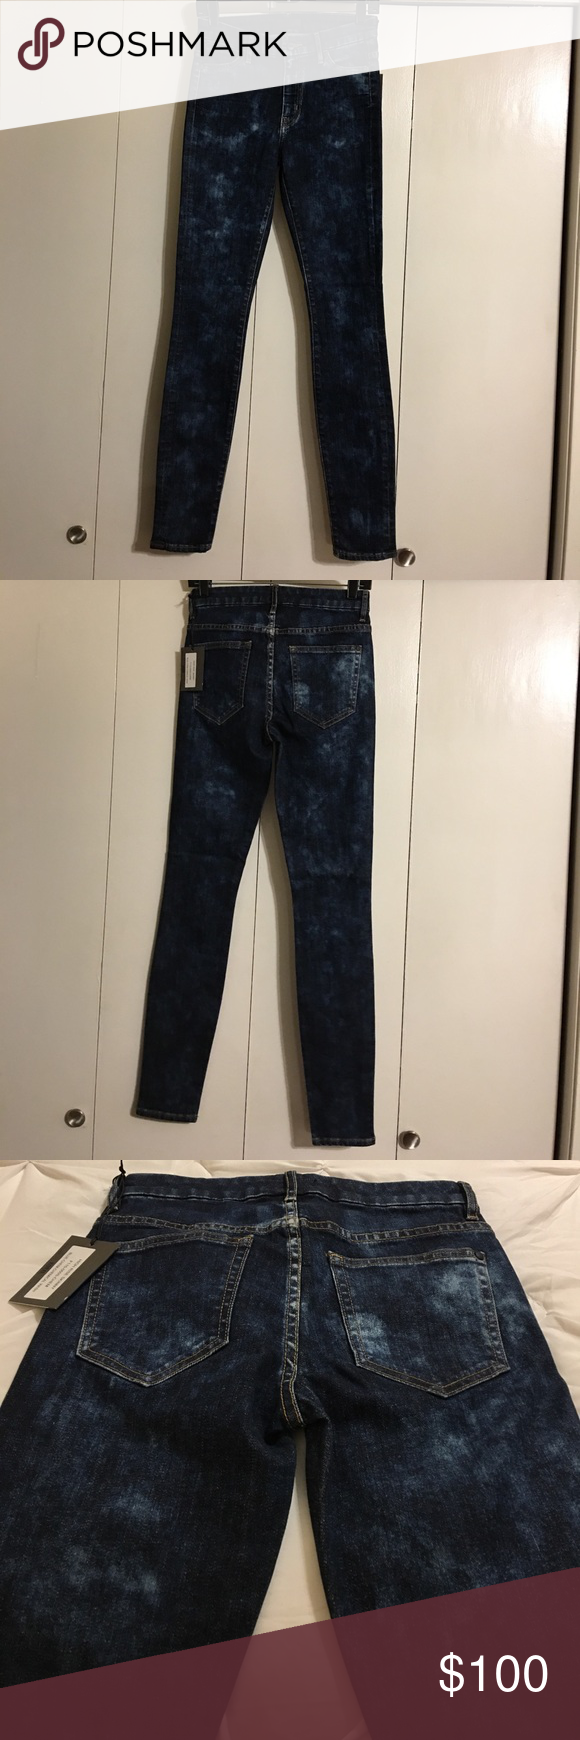 """NWT Koral Blue Chem Chemical Wash Skinny jeans 27 Size 27"""" Waist  30"""" Hips 31"""" Inseam. High Rise Skinny Blue-Chem-Chemical Wash Jeans. F115-050S Chem Brand new with tags. Koral Jeans Skinny"""